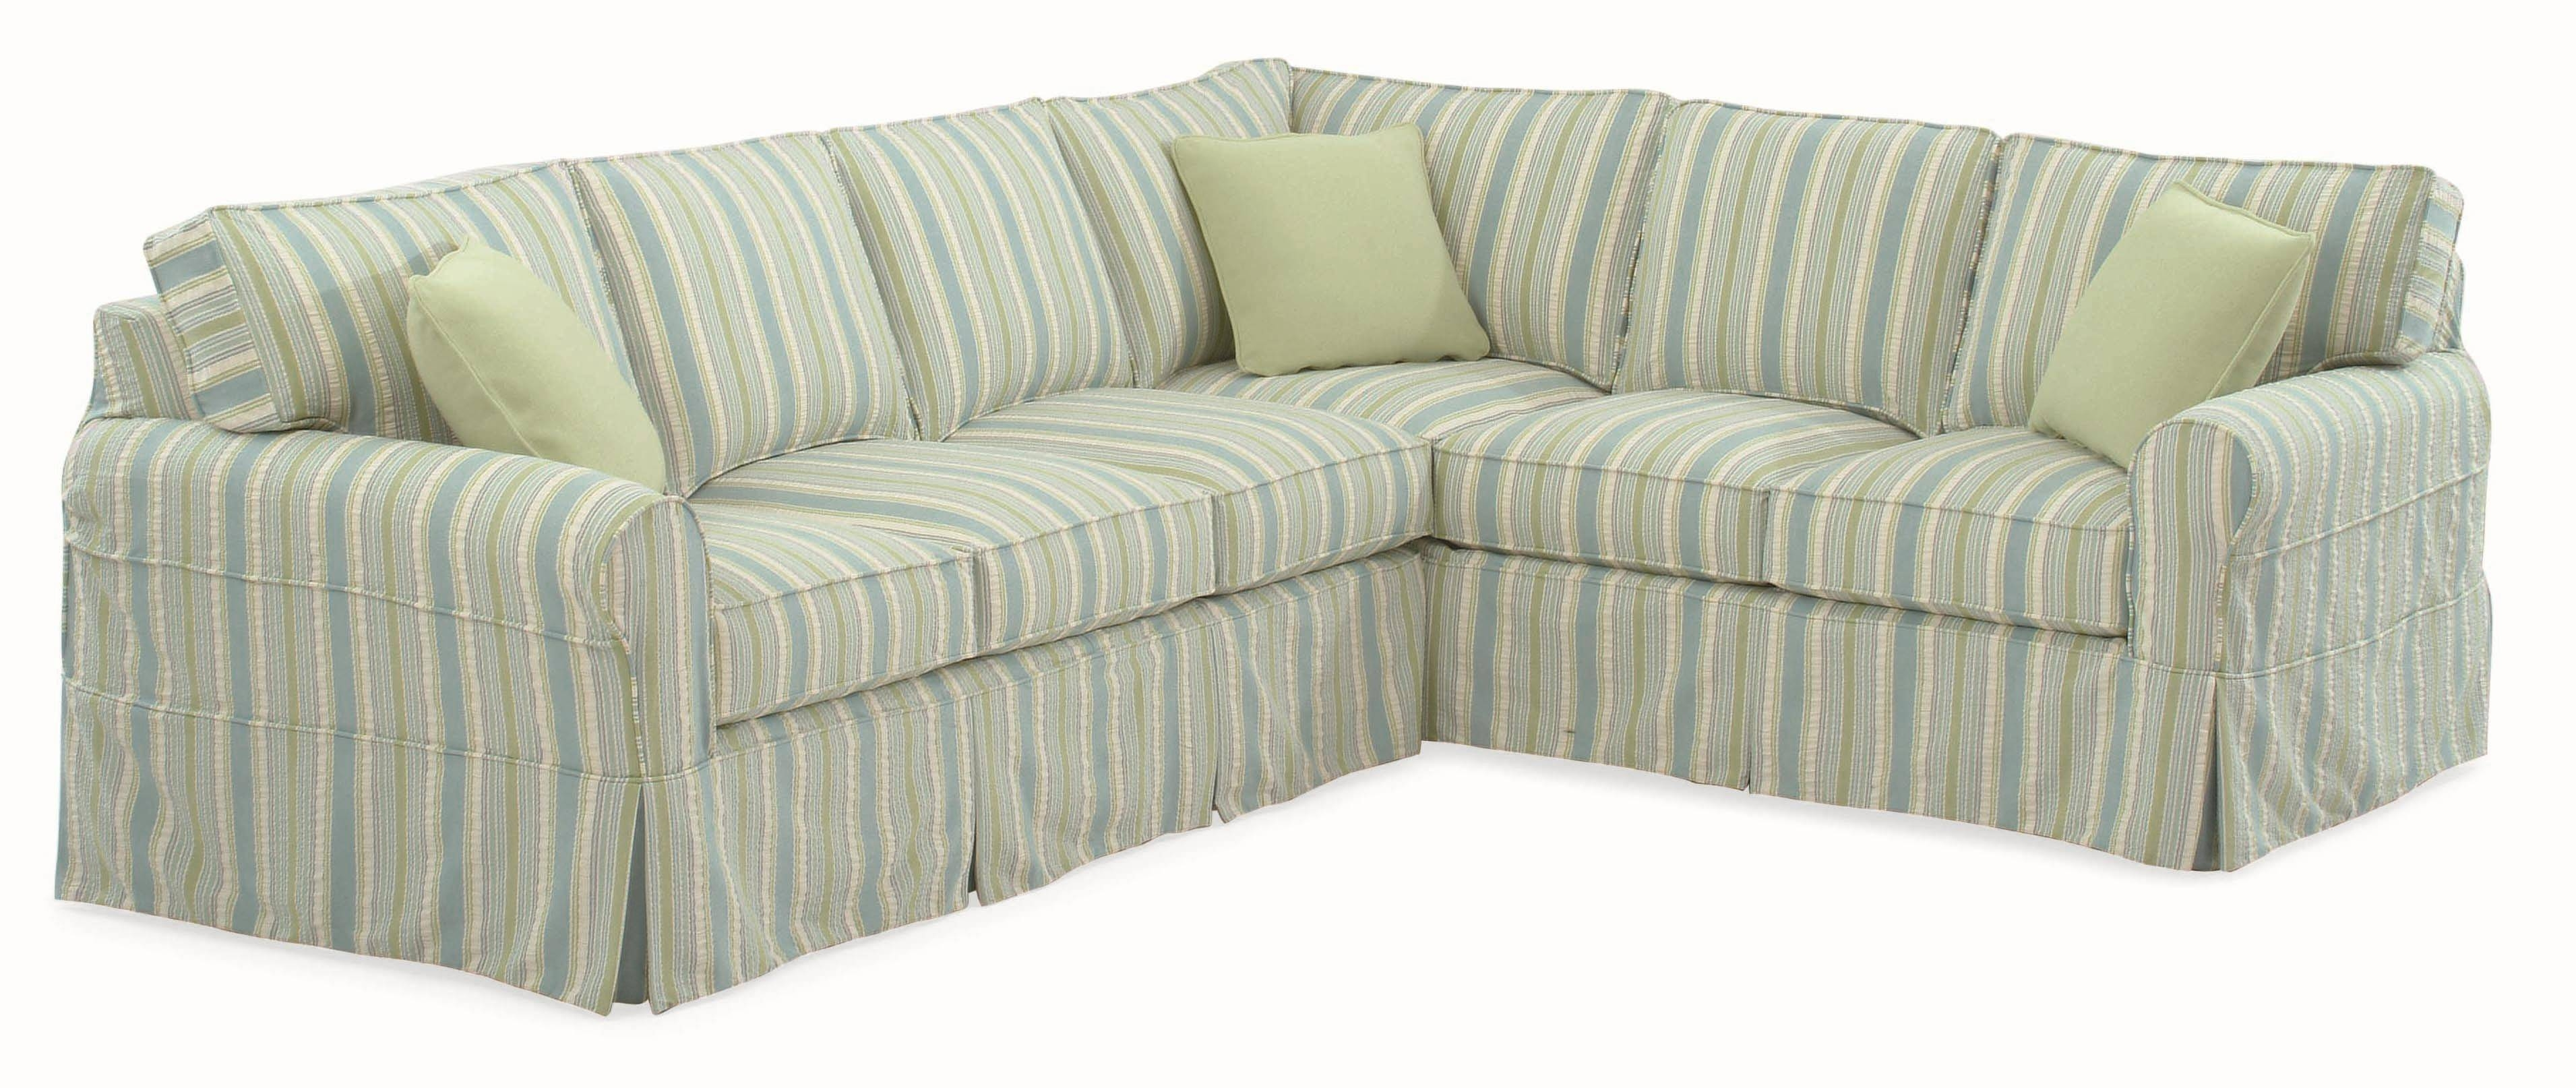 Braxton Culler 728 Casual Sectional Sofa With Rolled Arms And throughout Braxton Sectional Sofa (Image 1 of 30)